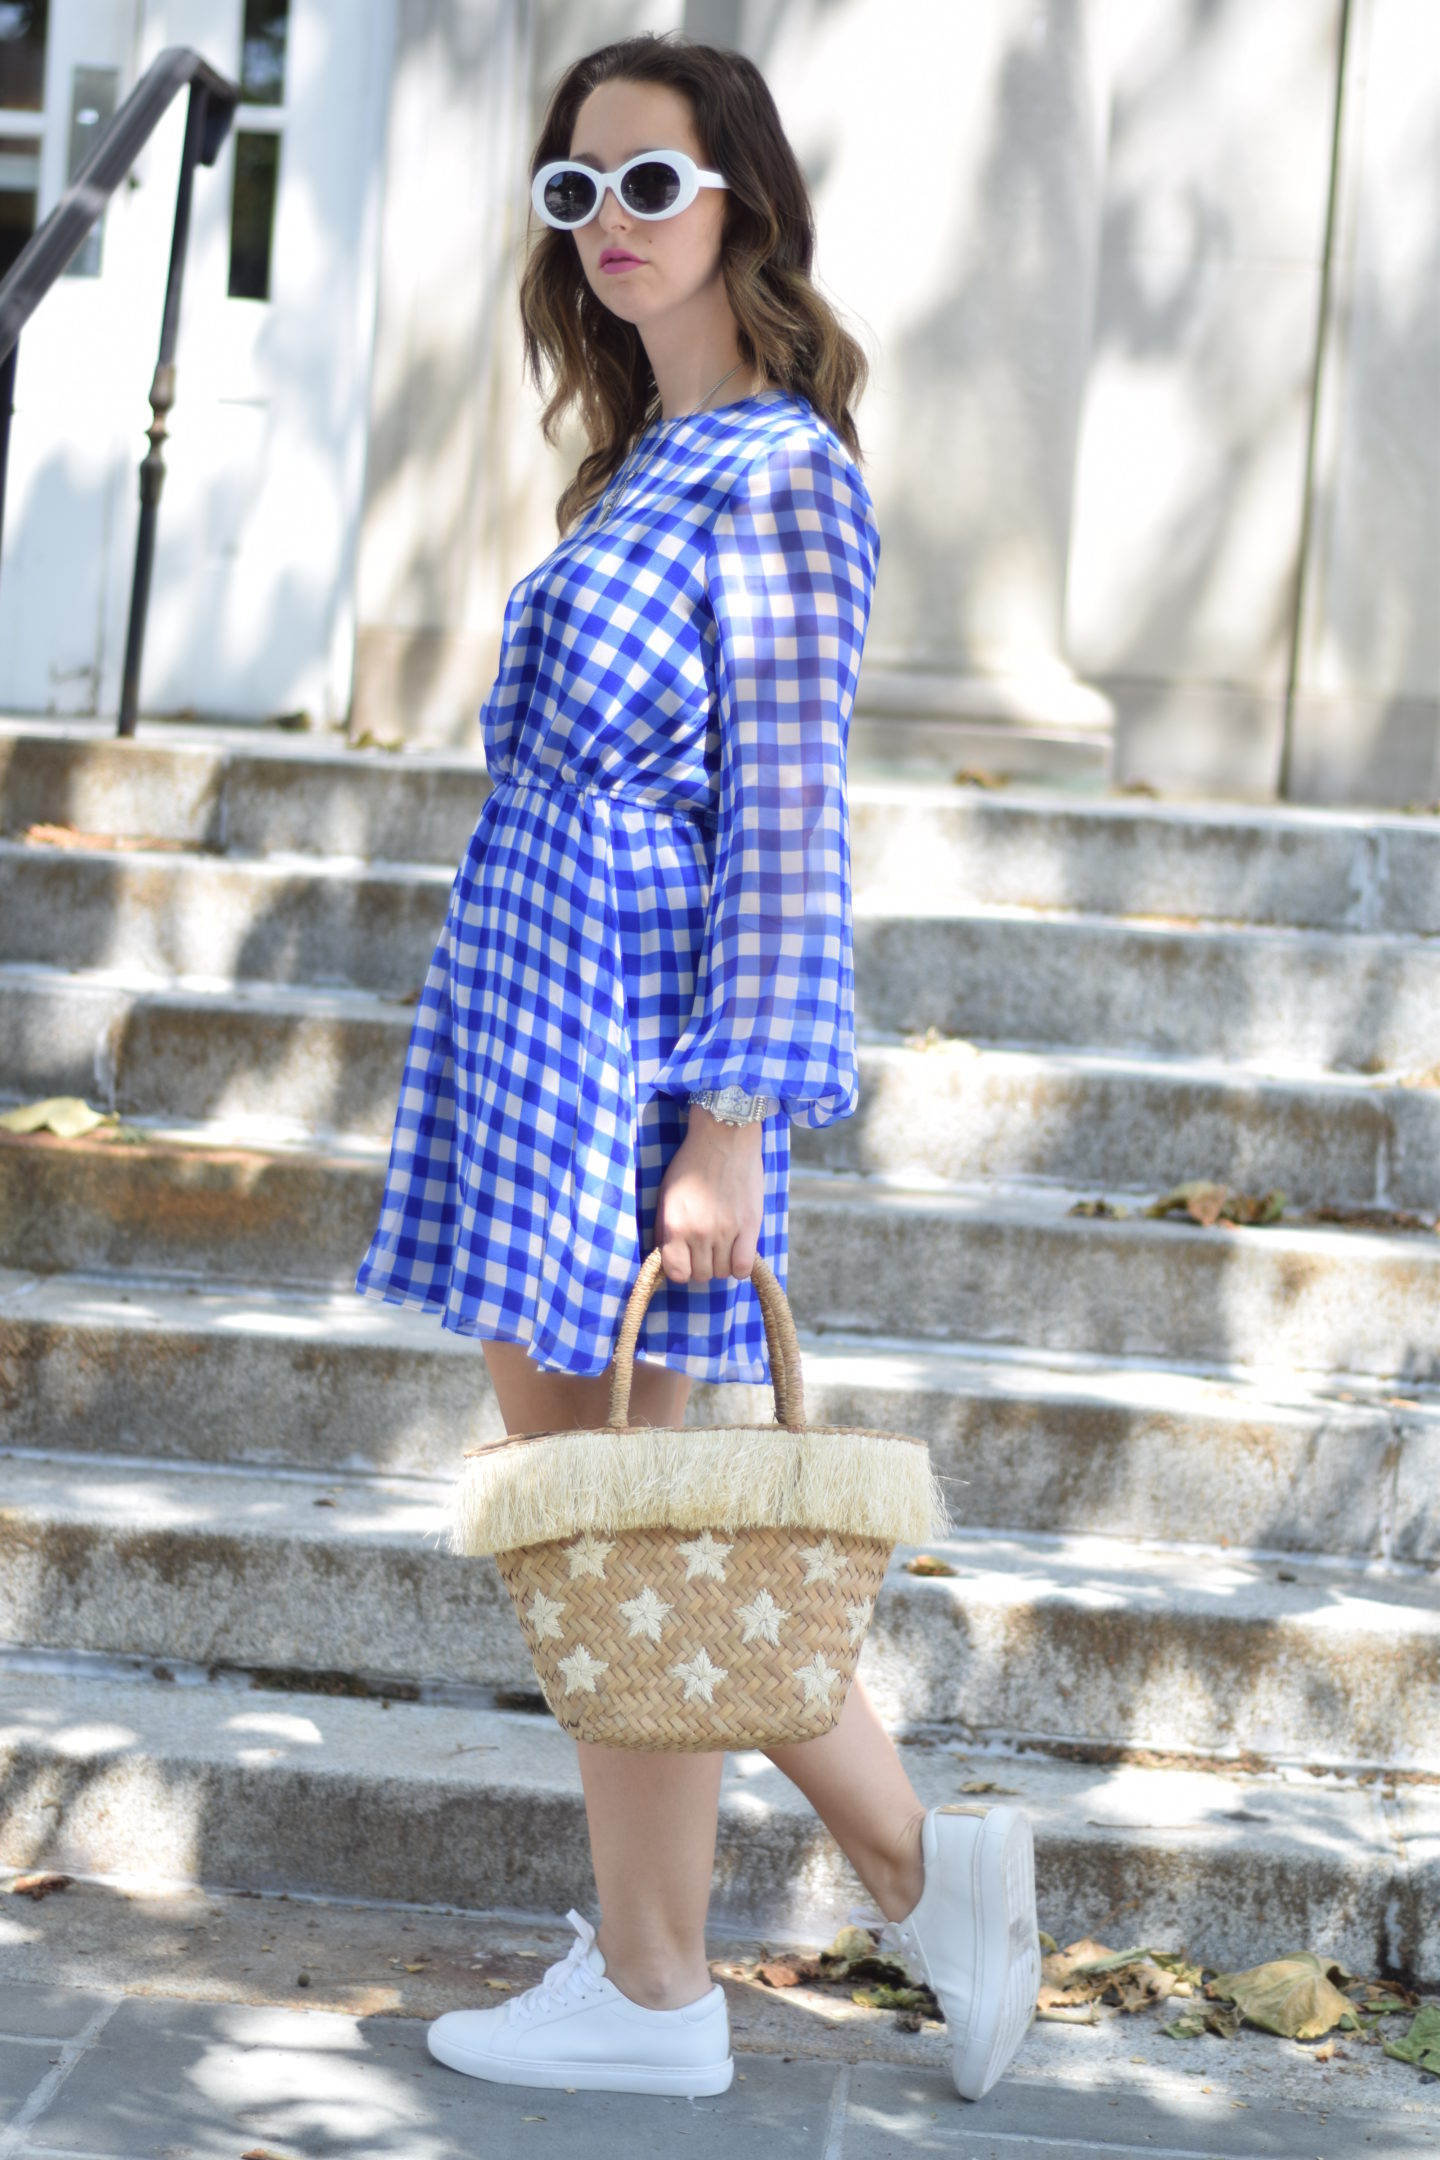 dress-sneakers-straw bag-white sunglasses